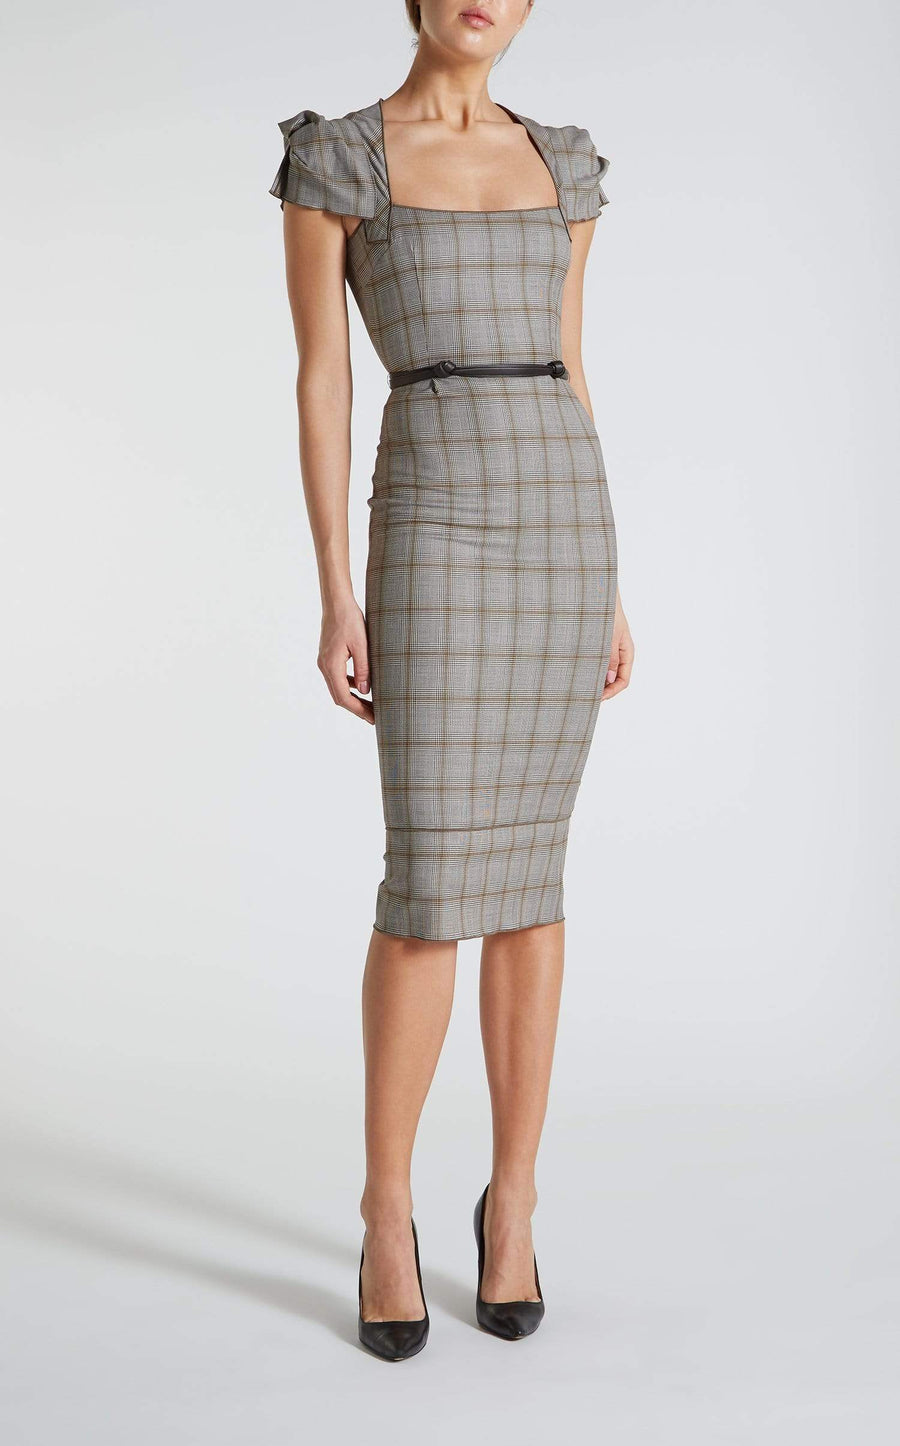 Galaxy Dress In Brown/Beige from Roland Mouret